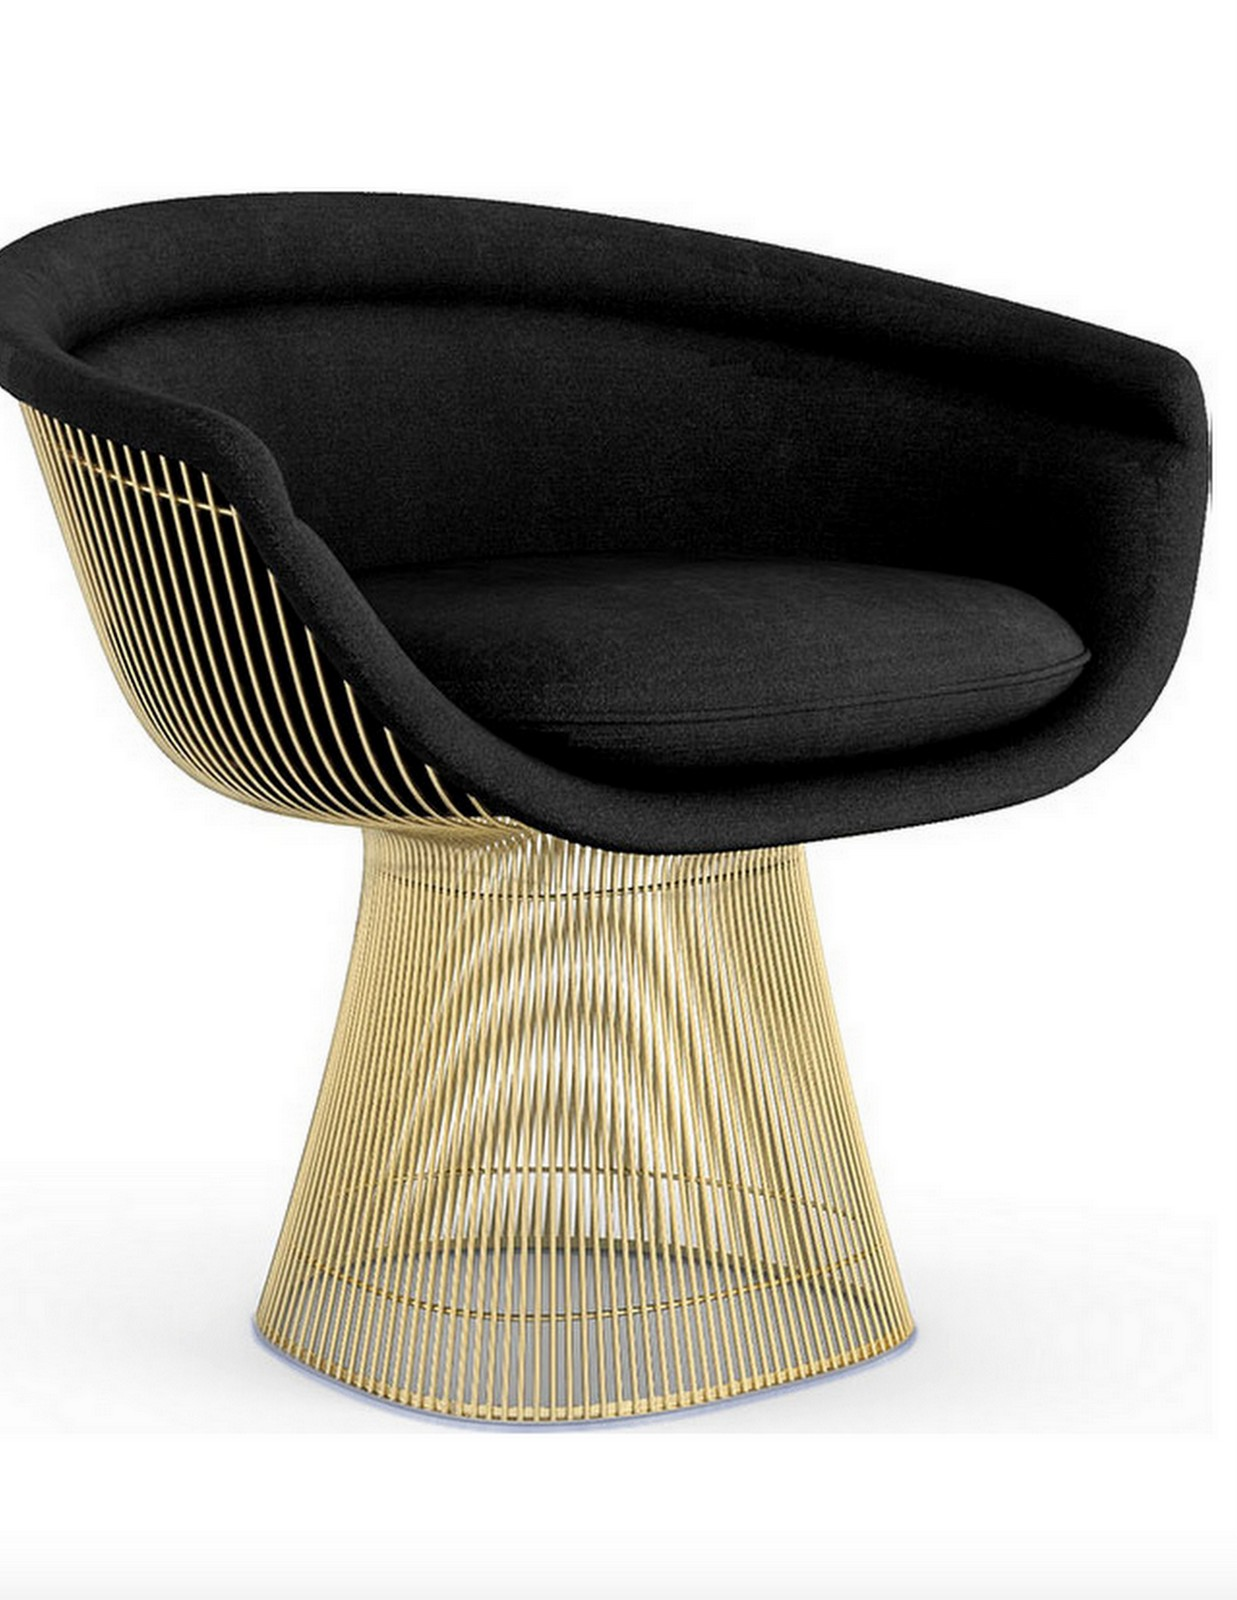 Gold Knoll Chair :: House of Valentina